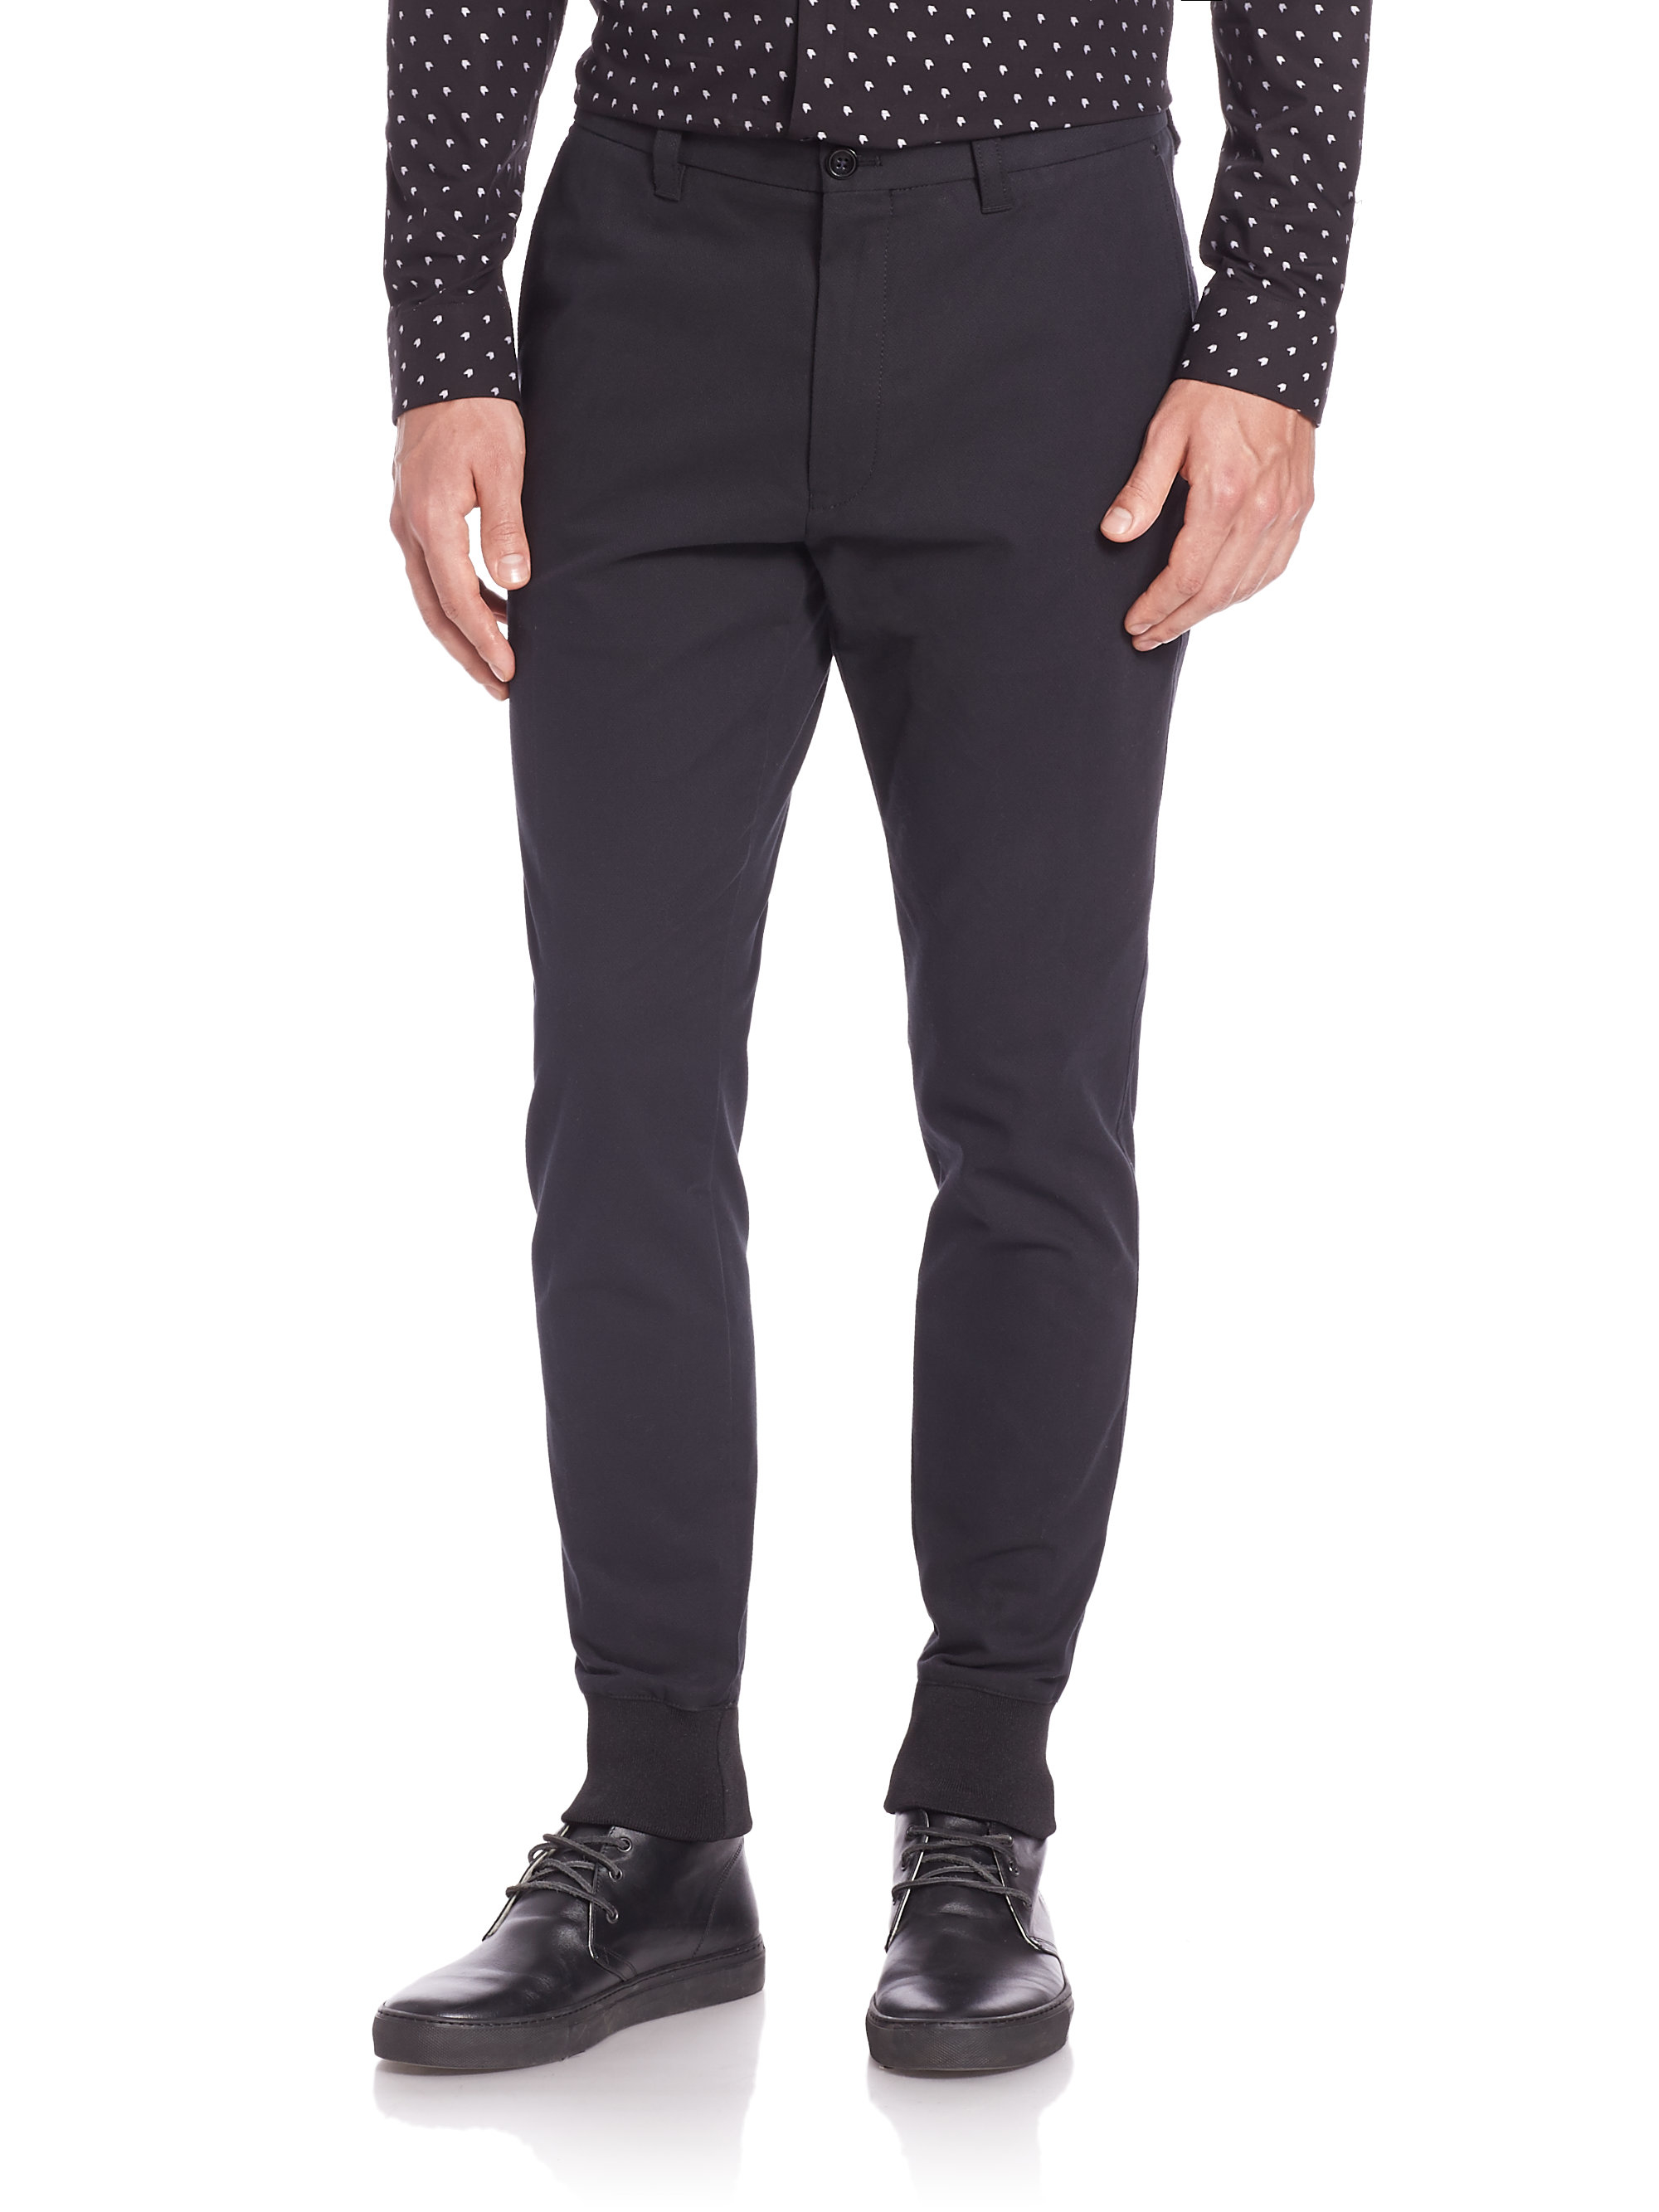 Shop for and buy womens jogger pants online at Macy's. Find womens jogger pants at Macy's.